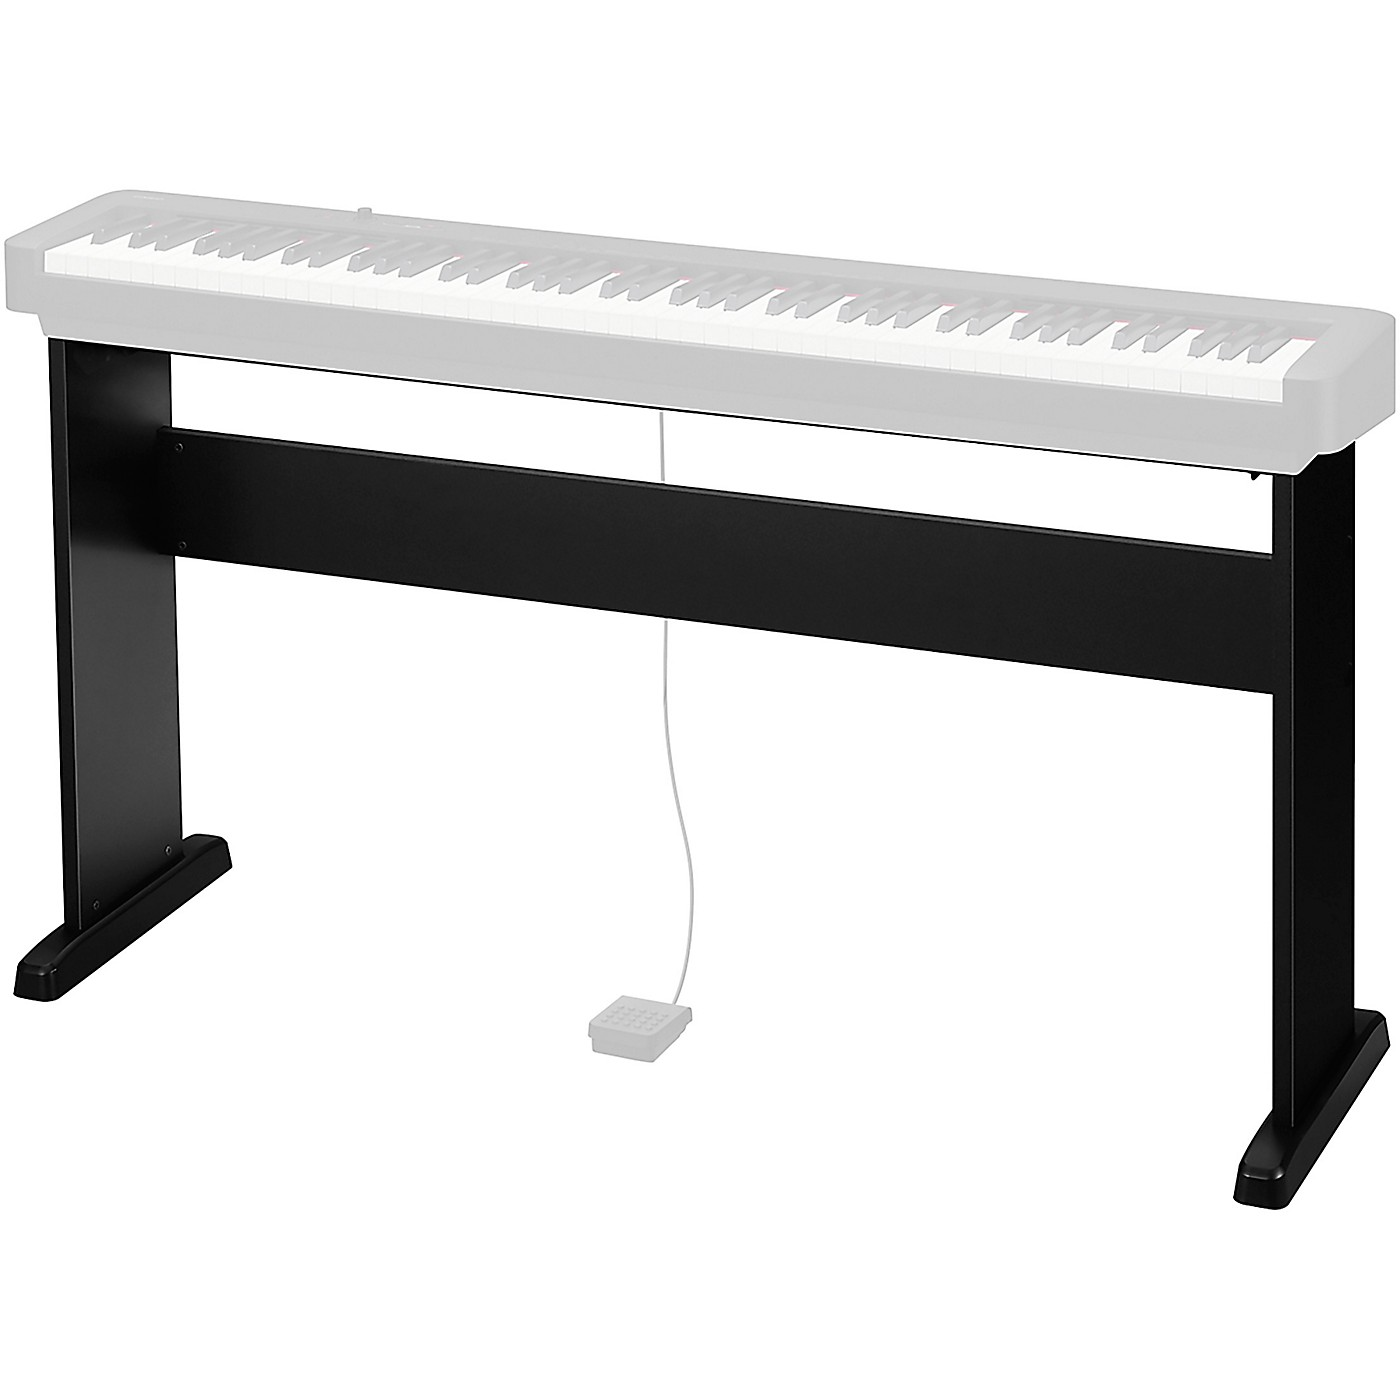 Casio CS-46 Stand for CDP-S100 / CDP-S350 Digital Pianos thumbnail